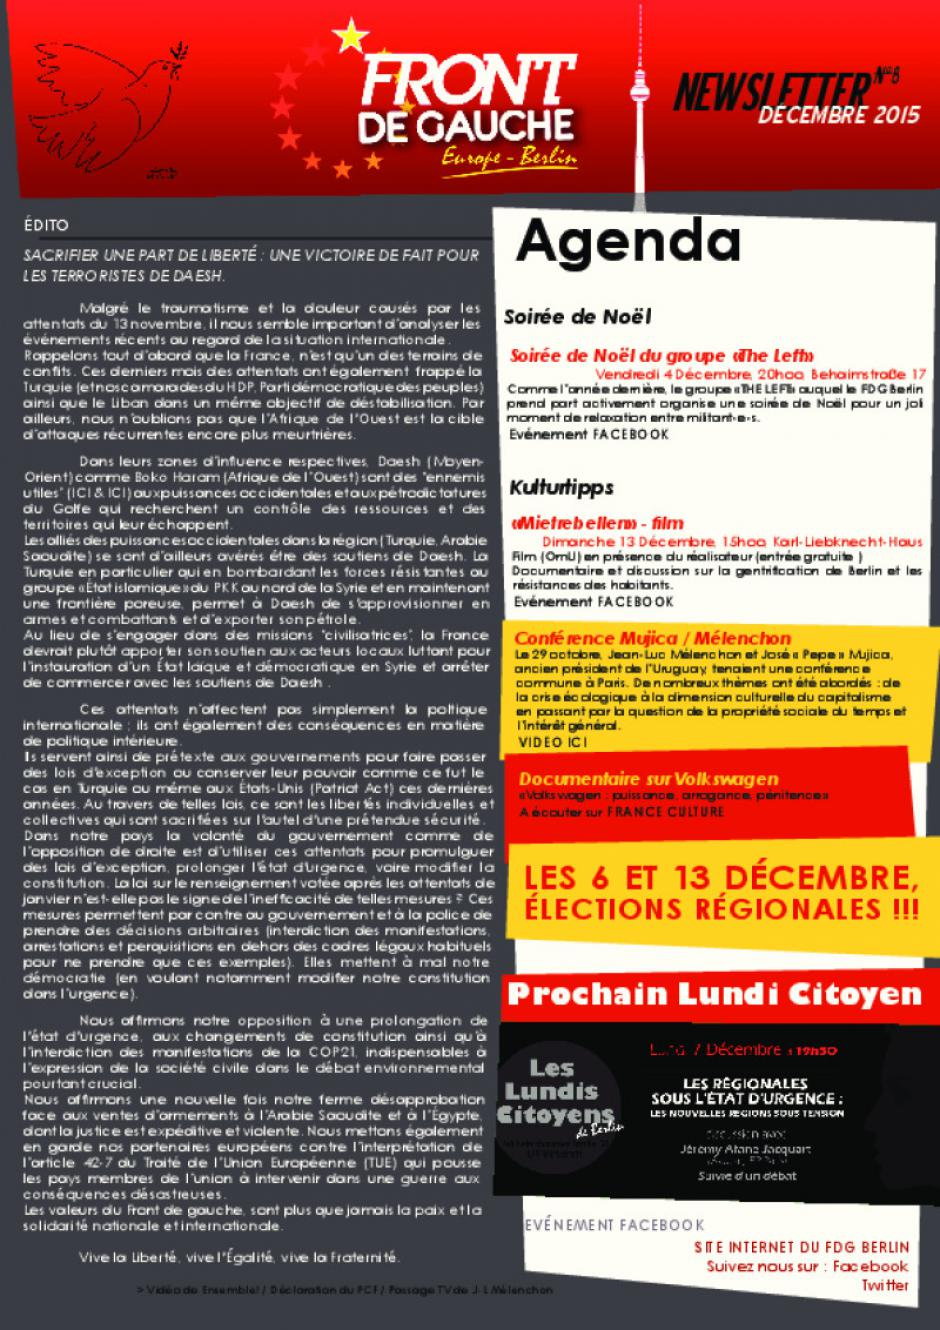 [Berlin] Newsletter du FDG - n°8 - Décembre 2015